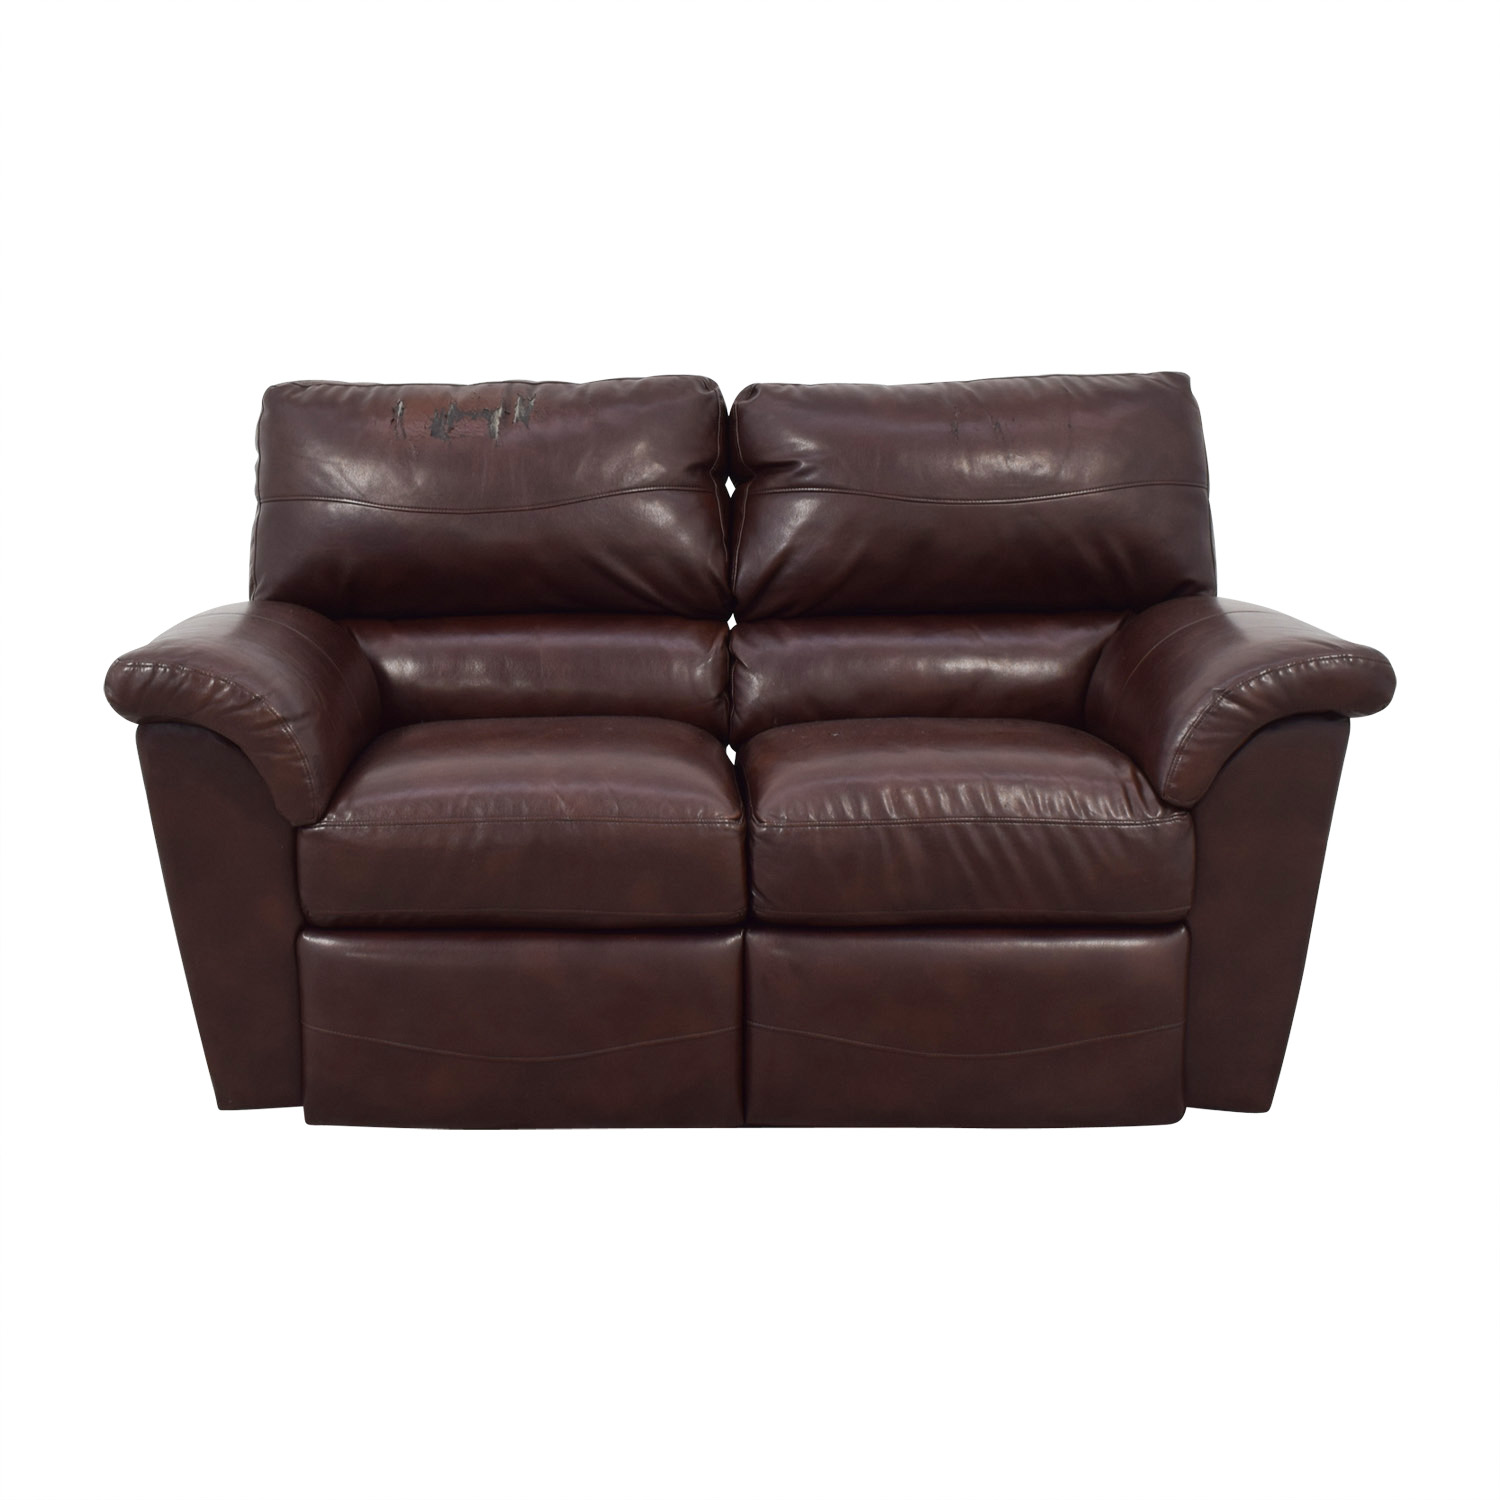 La-Z-Boy La Z Boy Oscar Leather Reclining Love Seat for sale